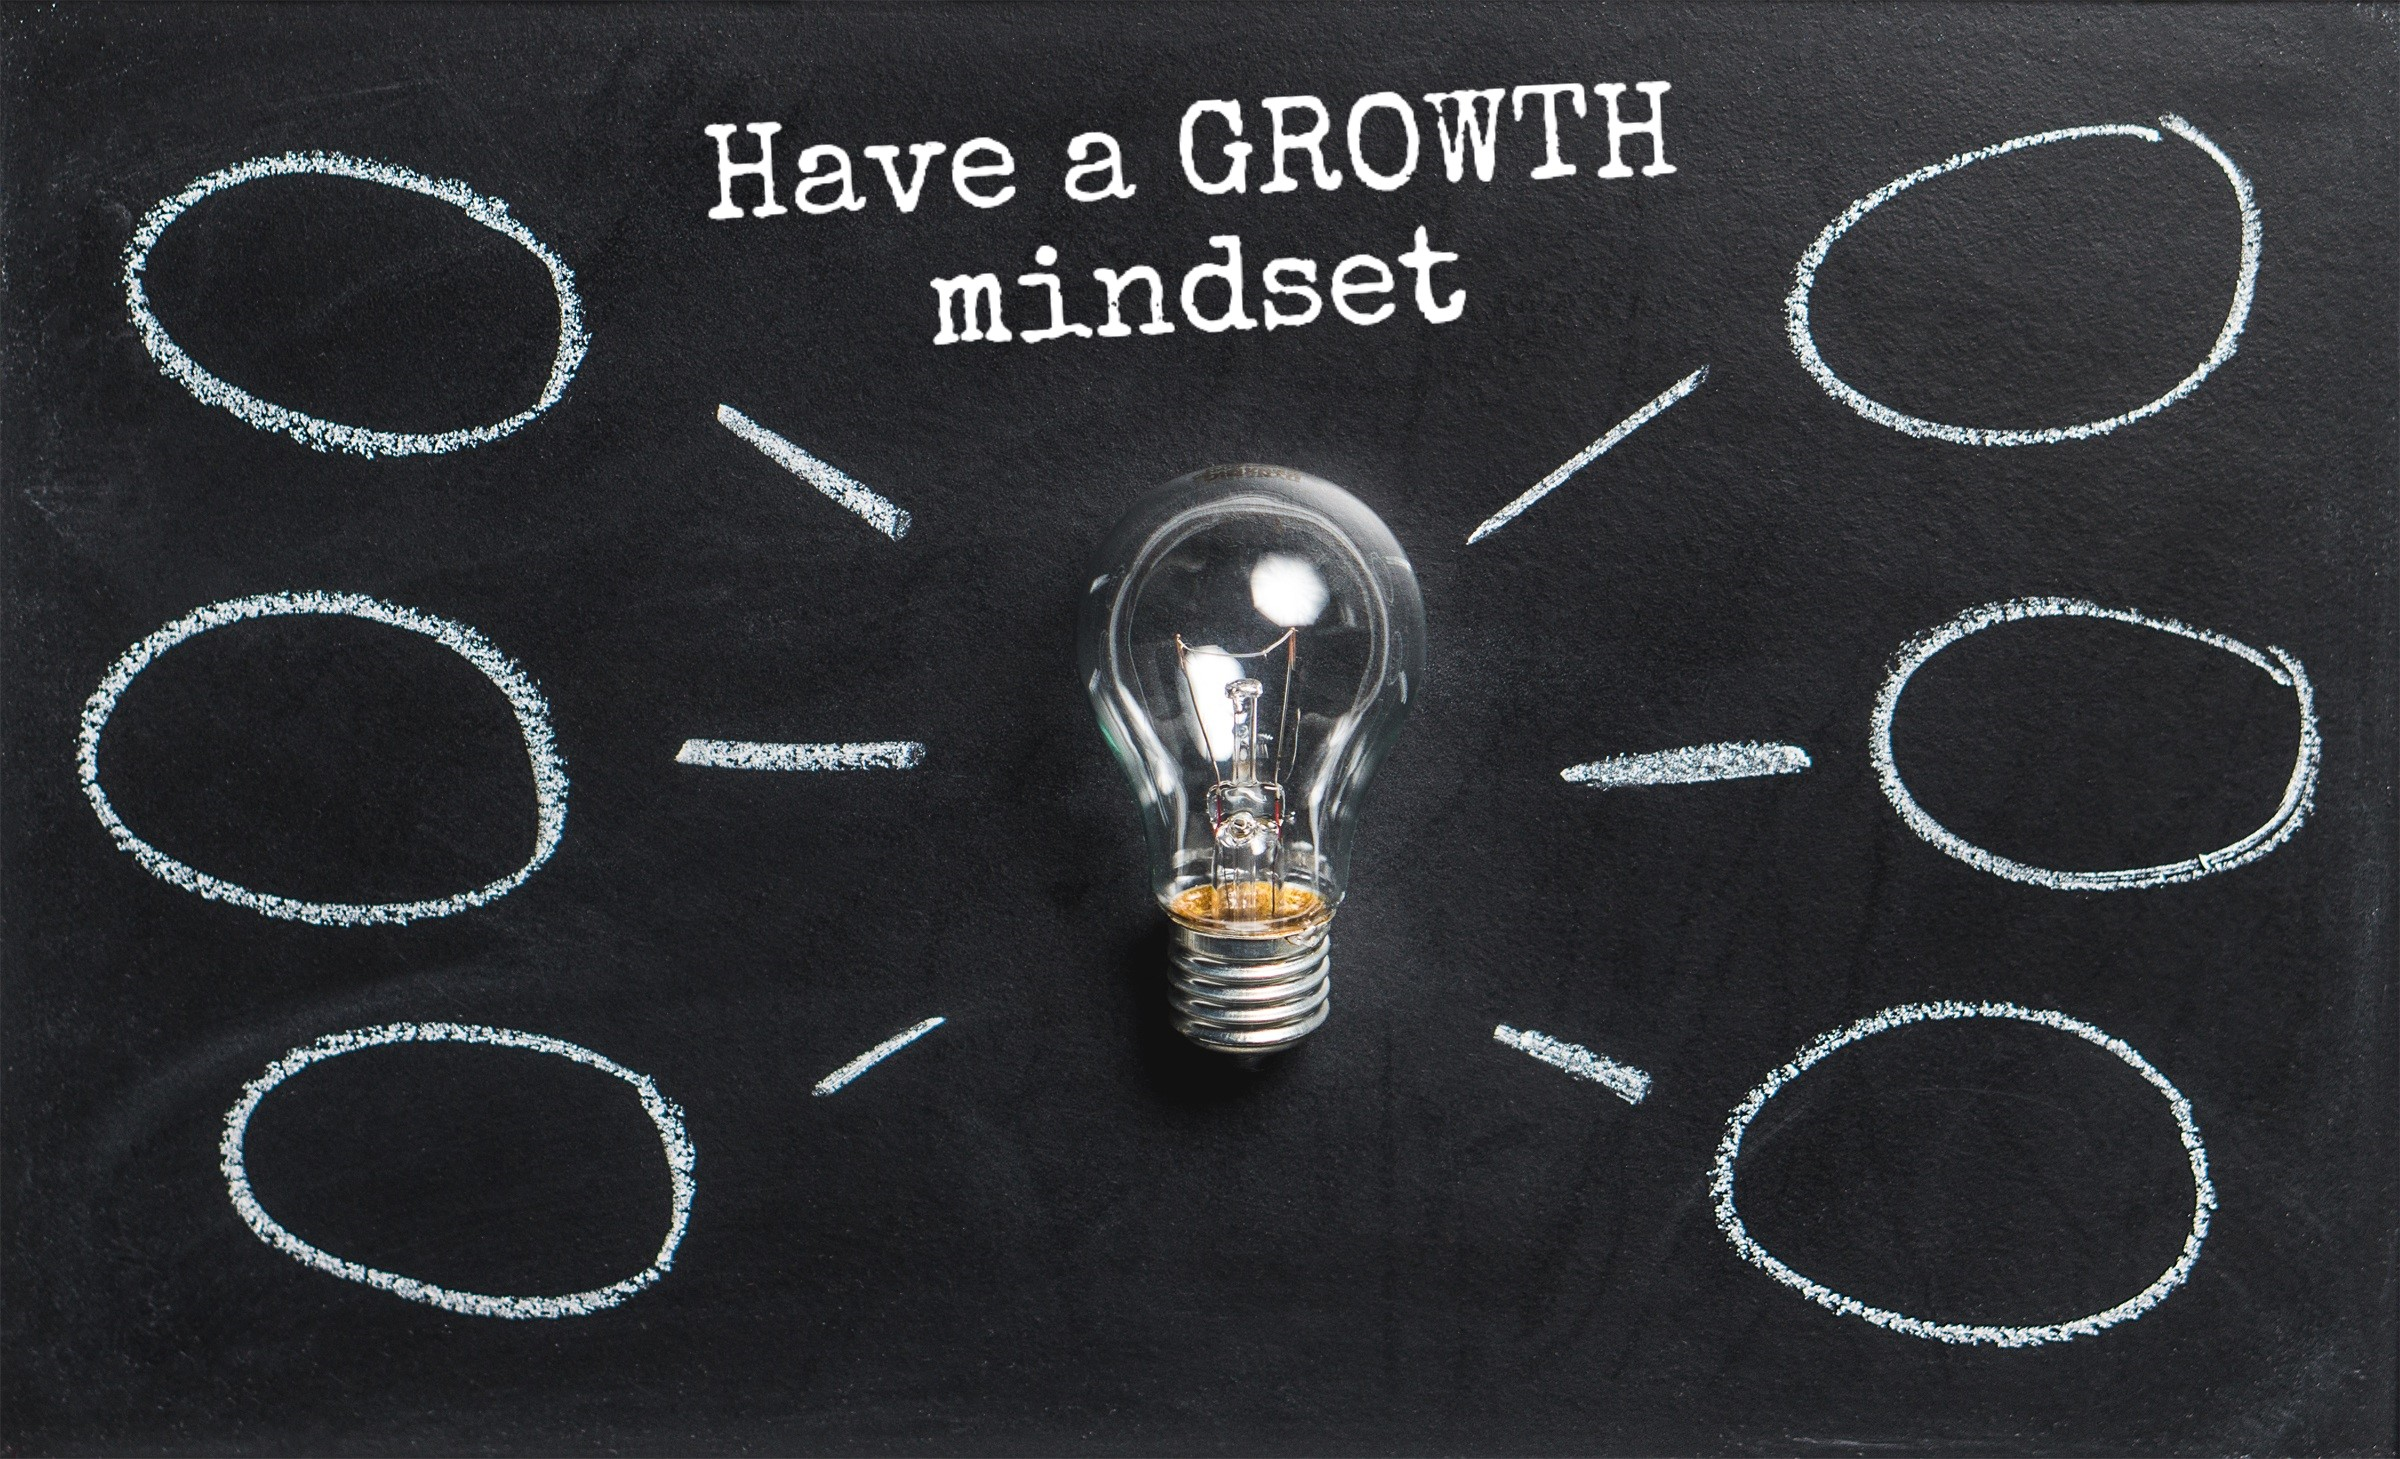 Have a Growth mindset for teachers